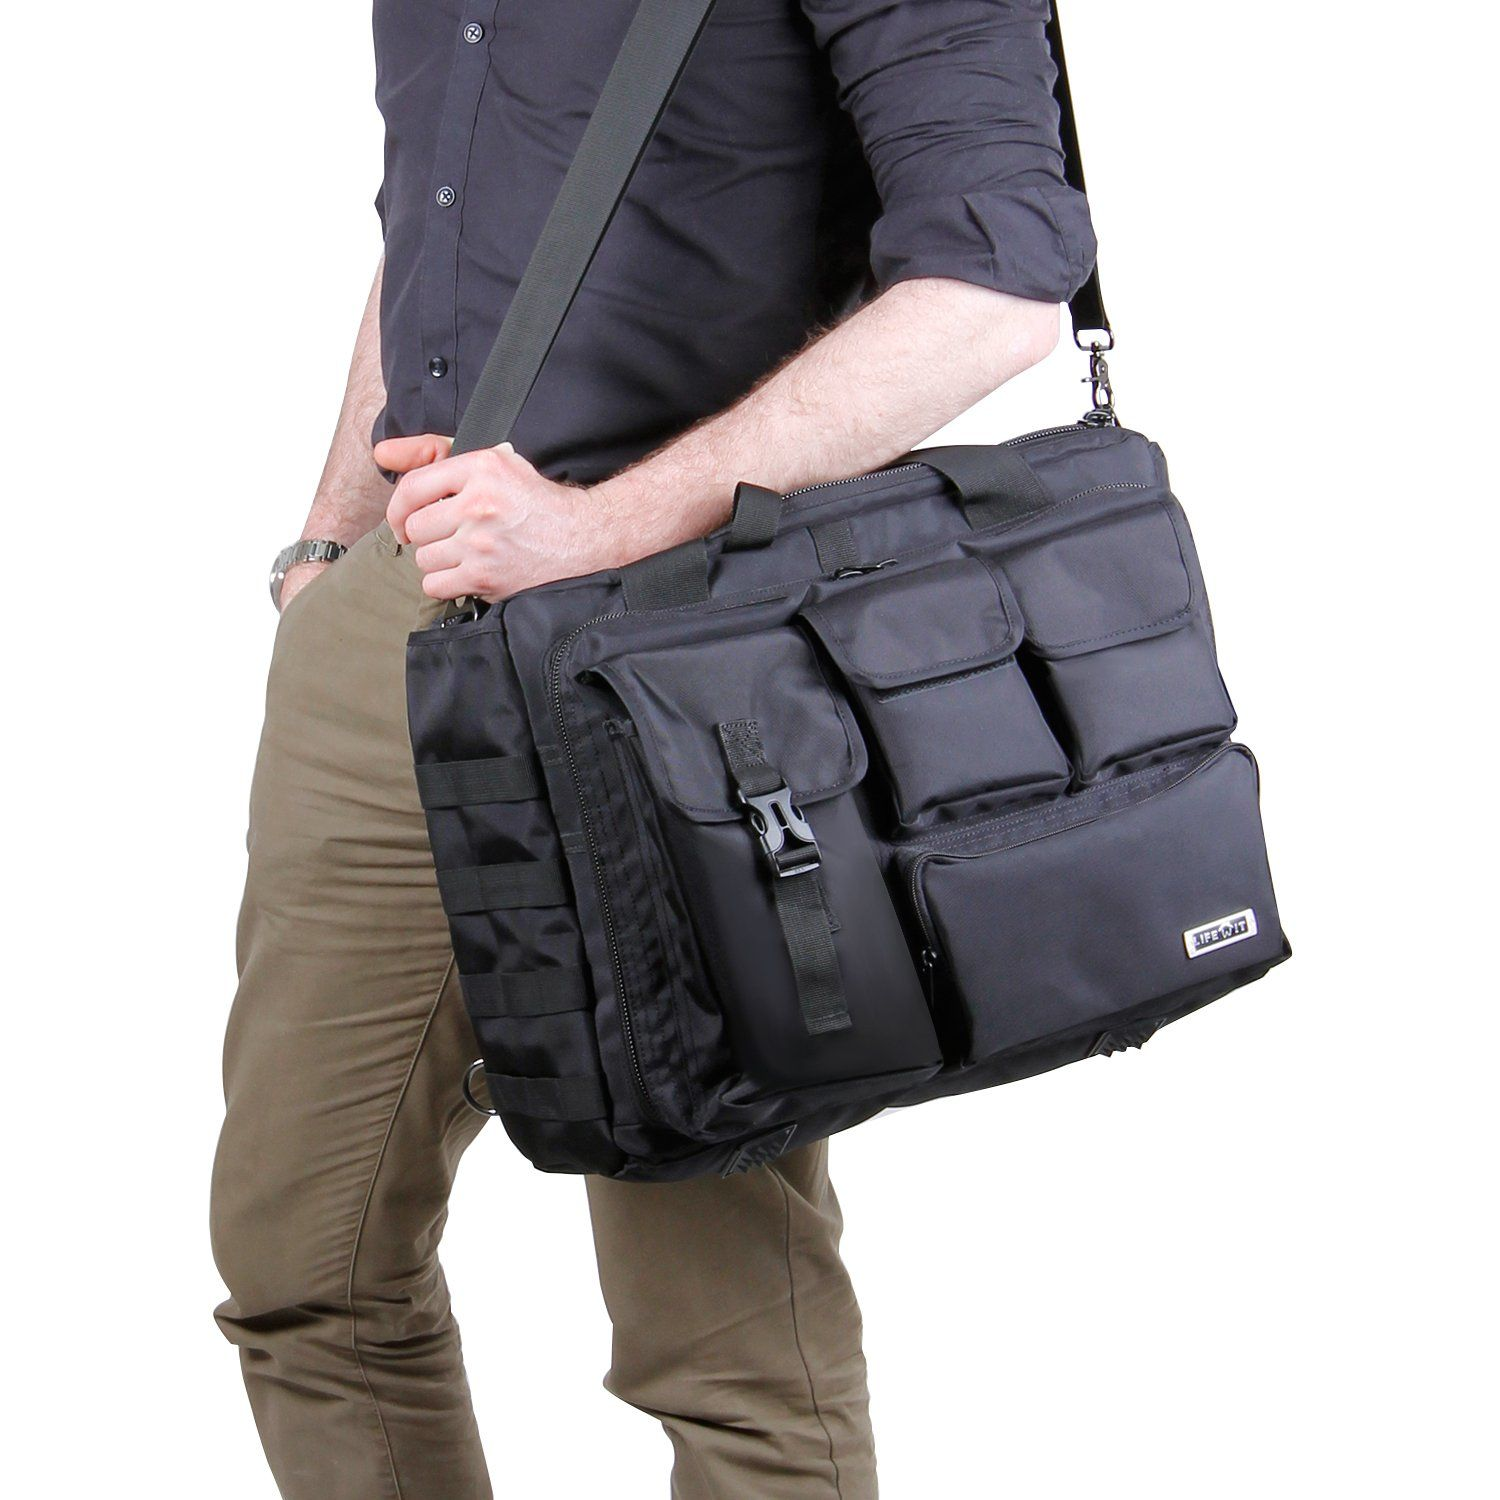 9b535cc8422e Lifewit 17.3 Mens Military Laptop Messenger Bag Multifunction Tactical  Briefcase Computer Shoulder Handbags Black    To view further for this  item